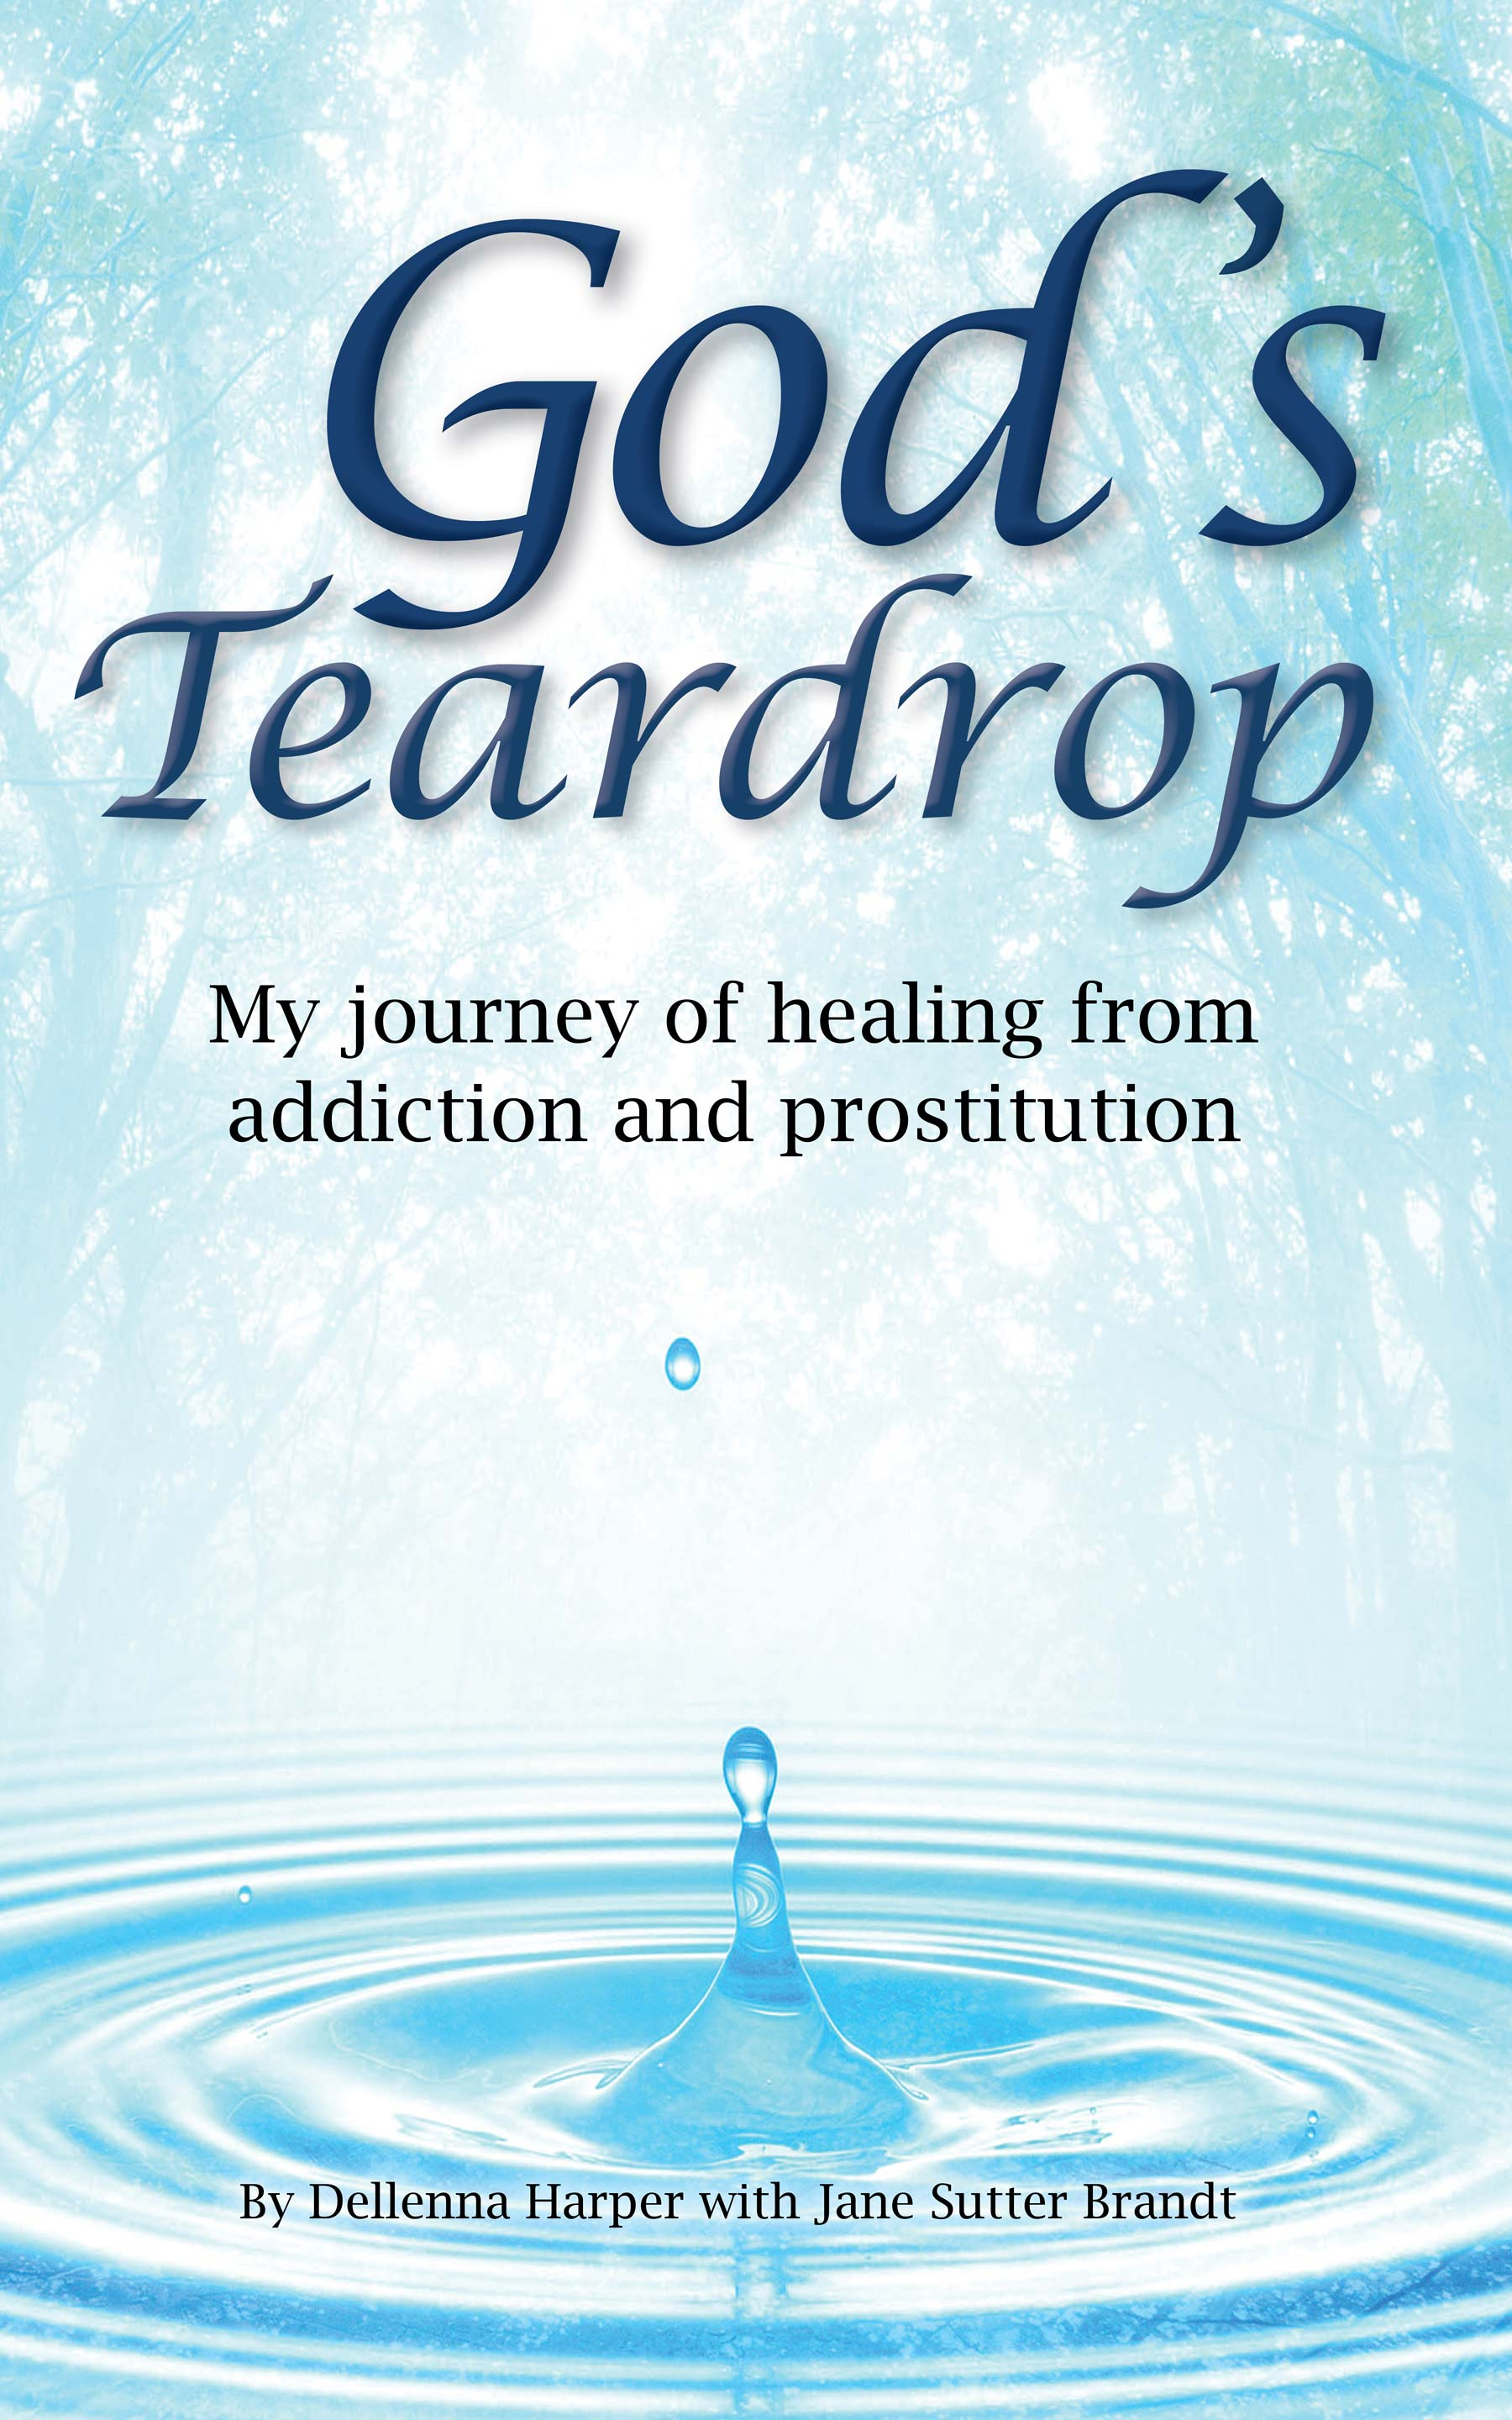 God's Teardrop: My Journey of Healing from Addiction and Prostitution Book Discussion